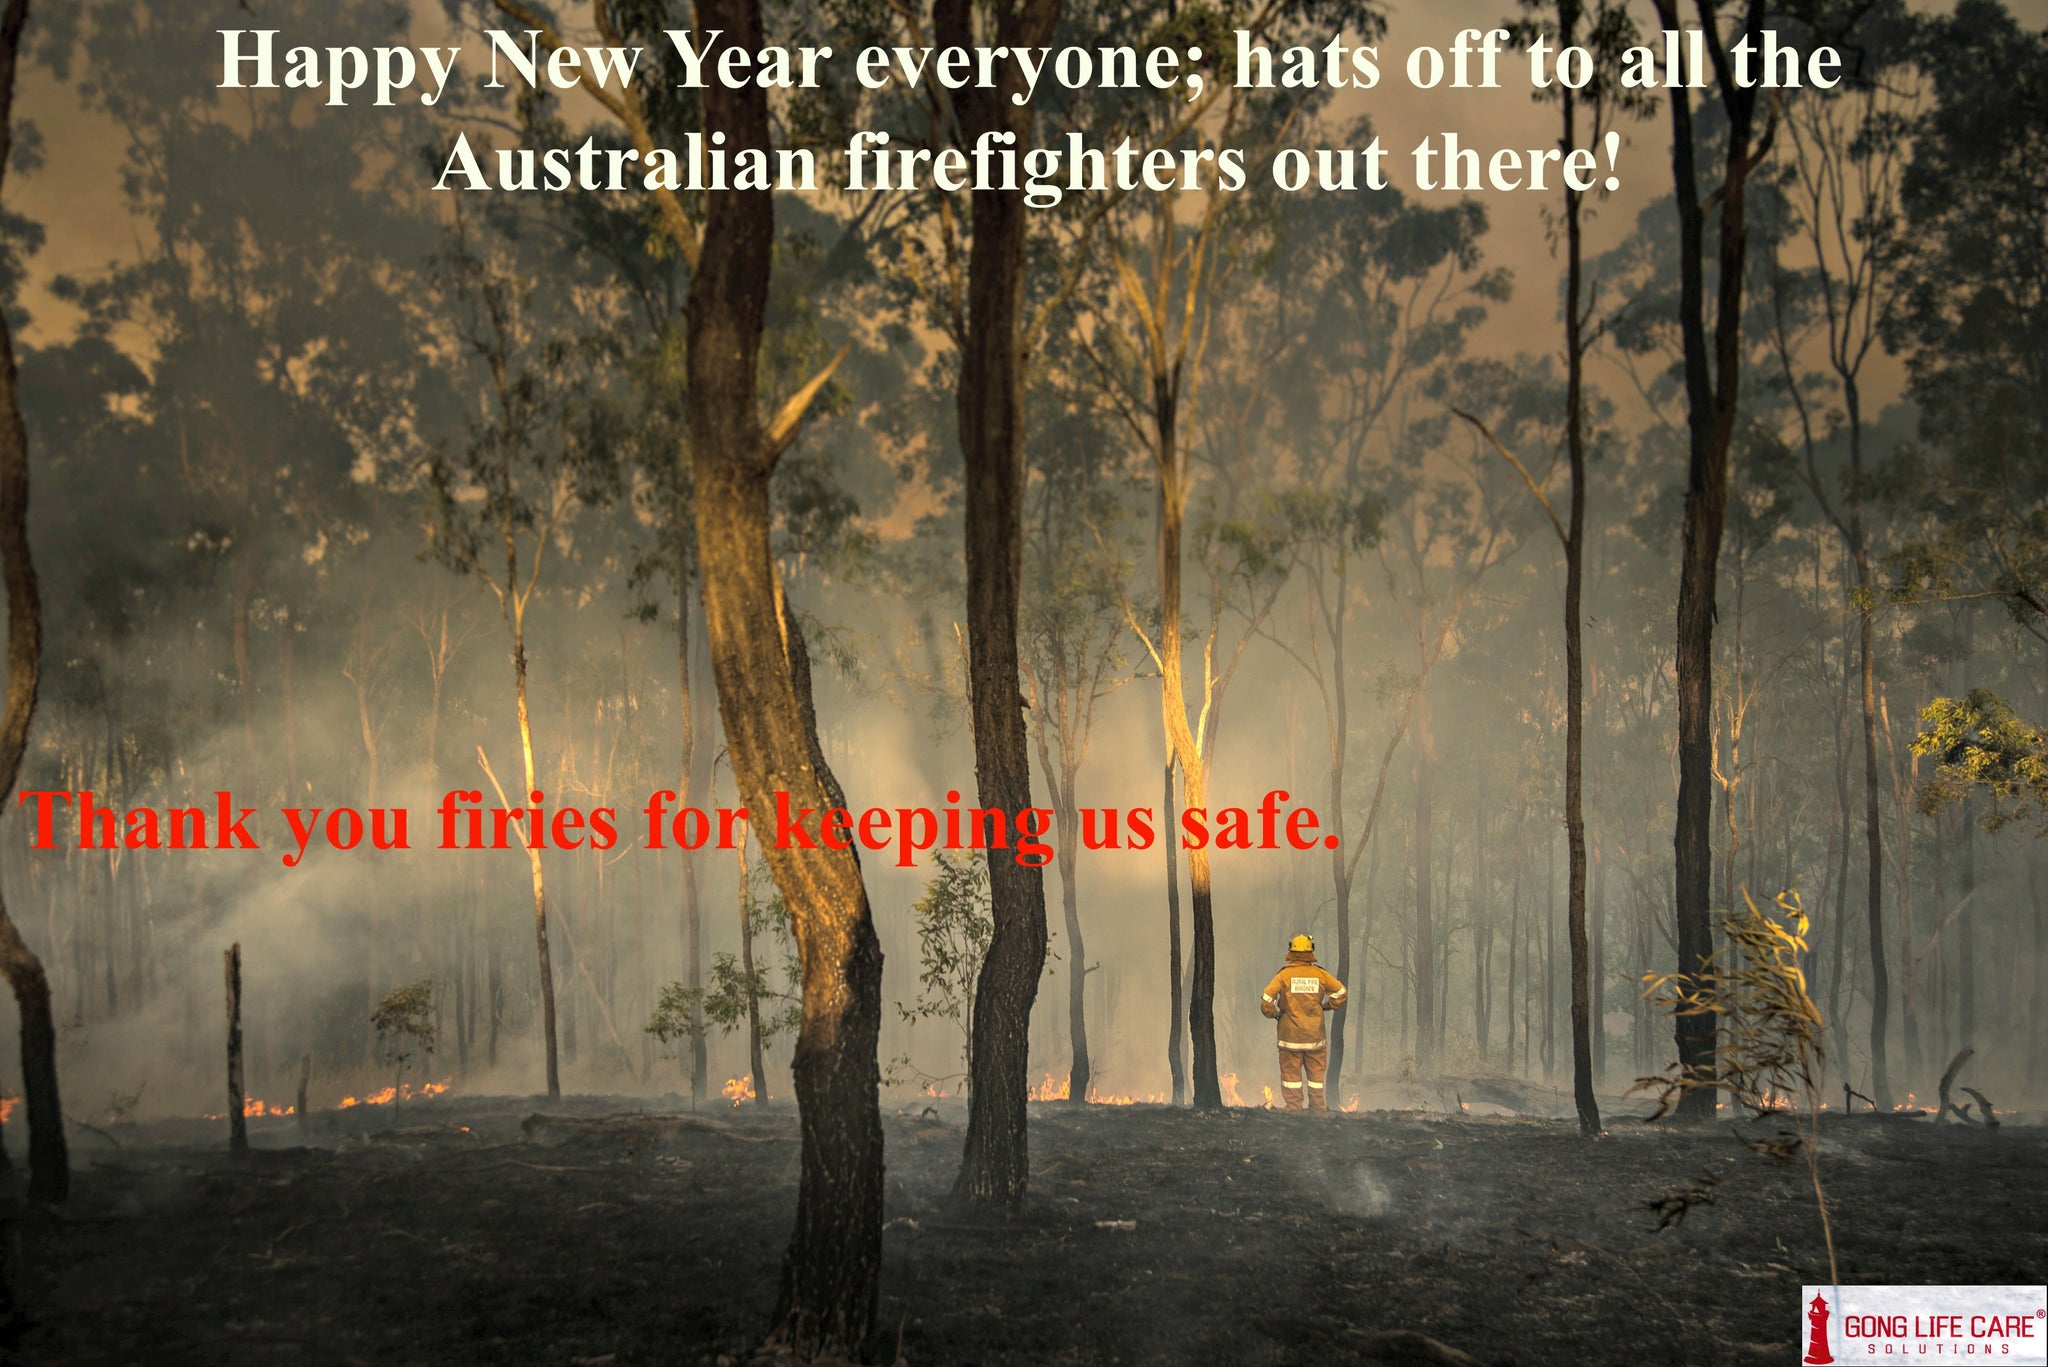 Happy New Year | Thank you firies